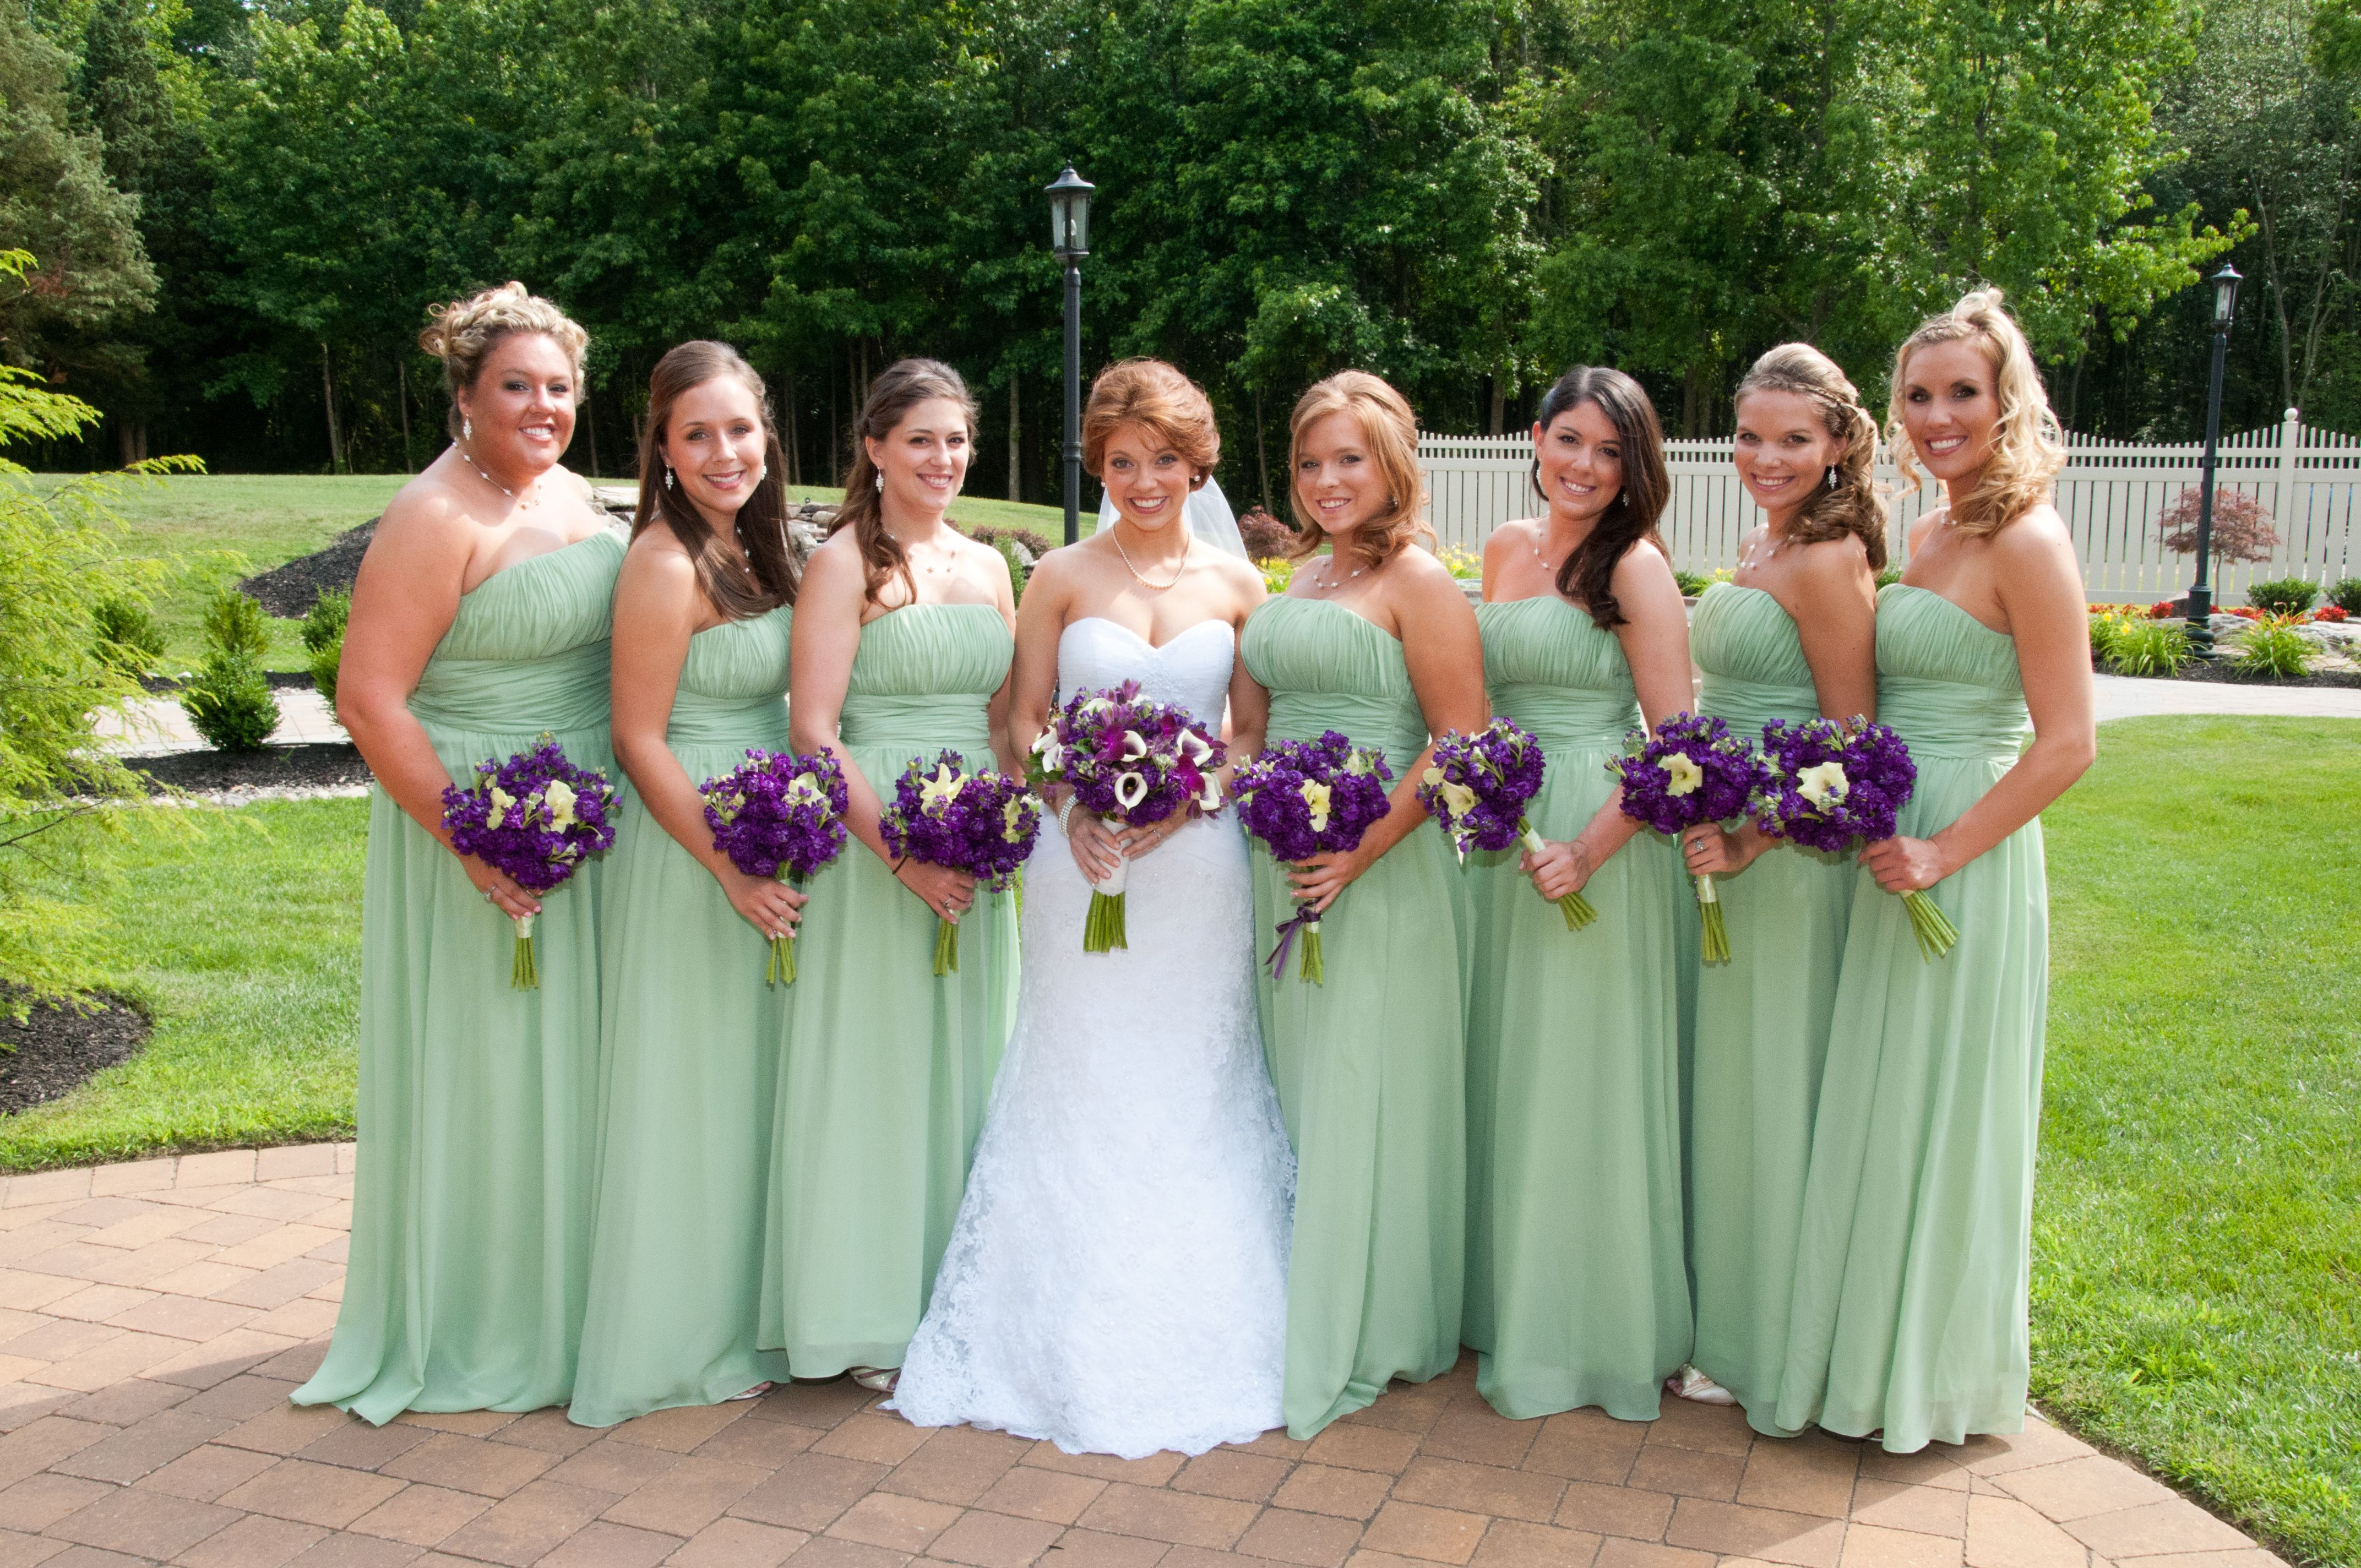 Bridal Party The Purple Bouquets Look Great Against Green S Carried Of Stock And Gladiola Blooms